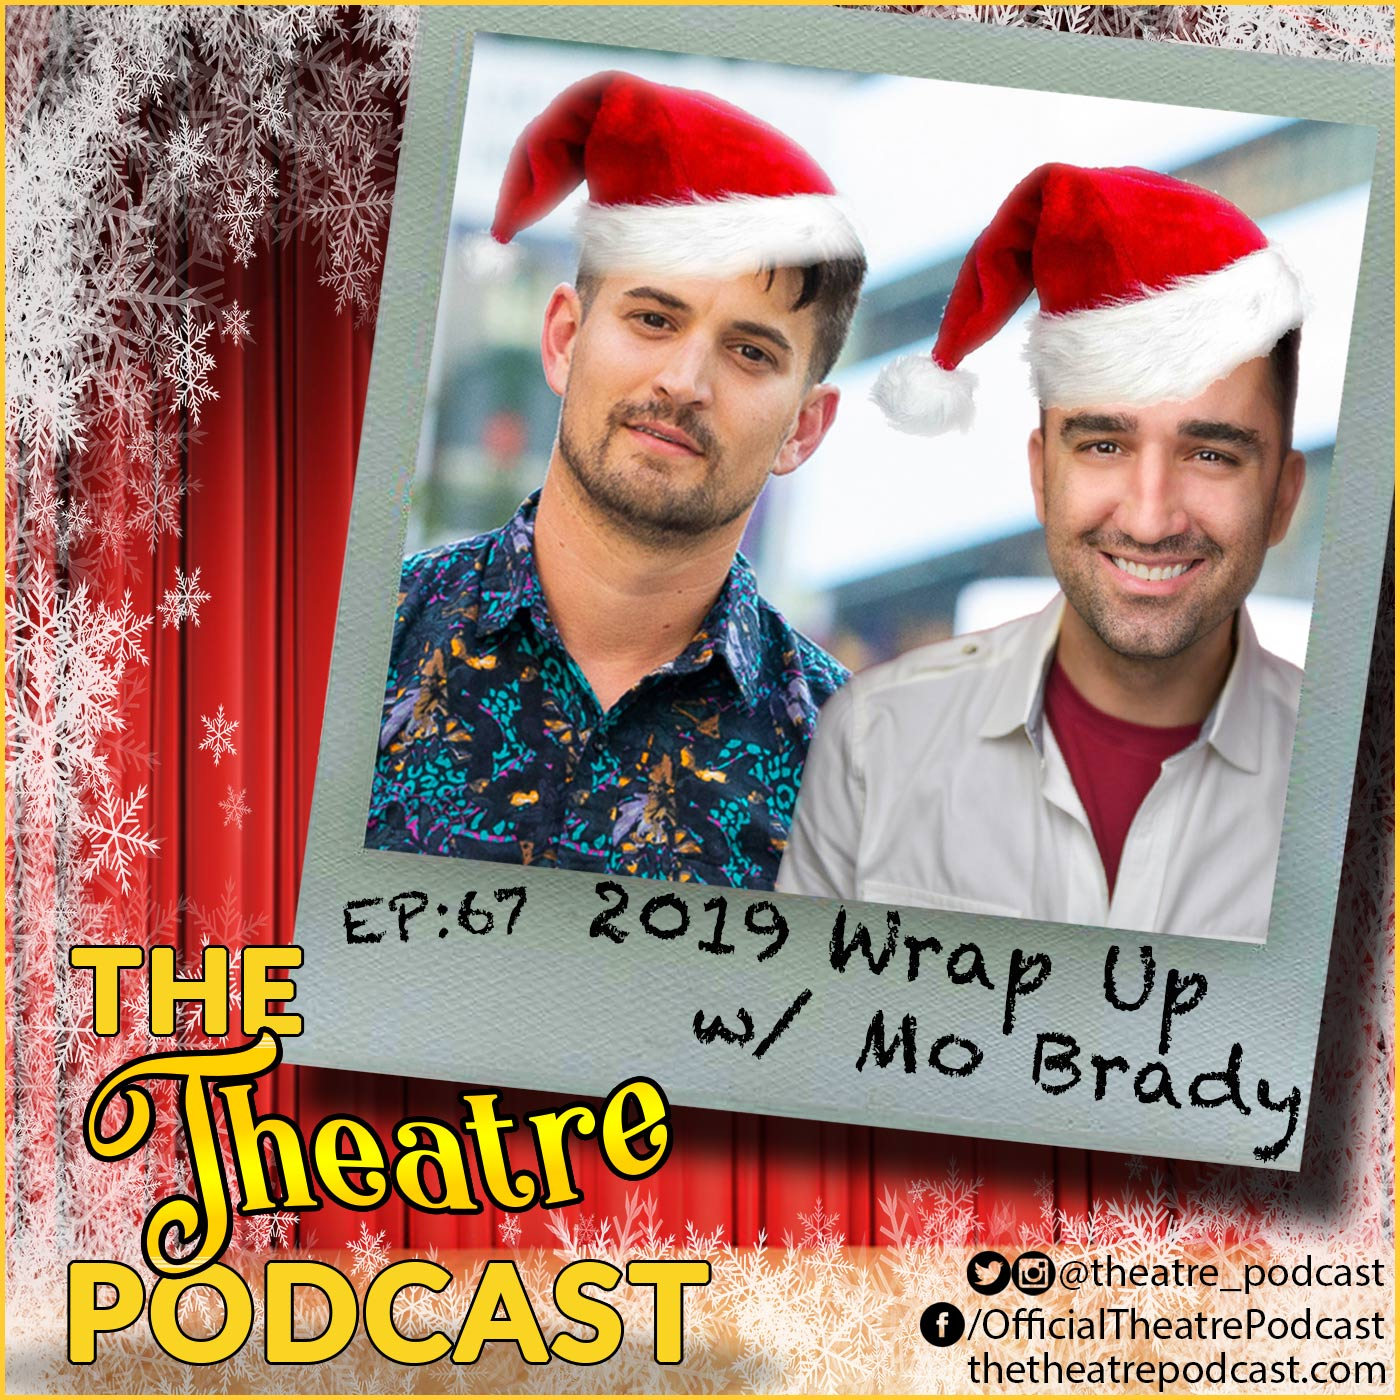 The Theatre Podcast Episode 67 2019 Wrap Up with guest Mo Brady